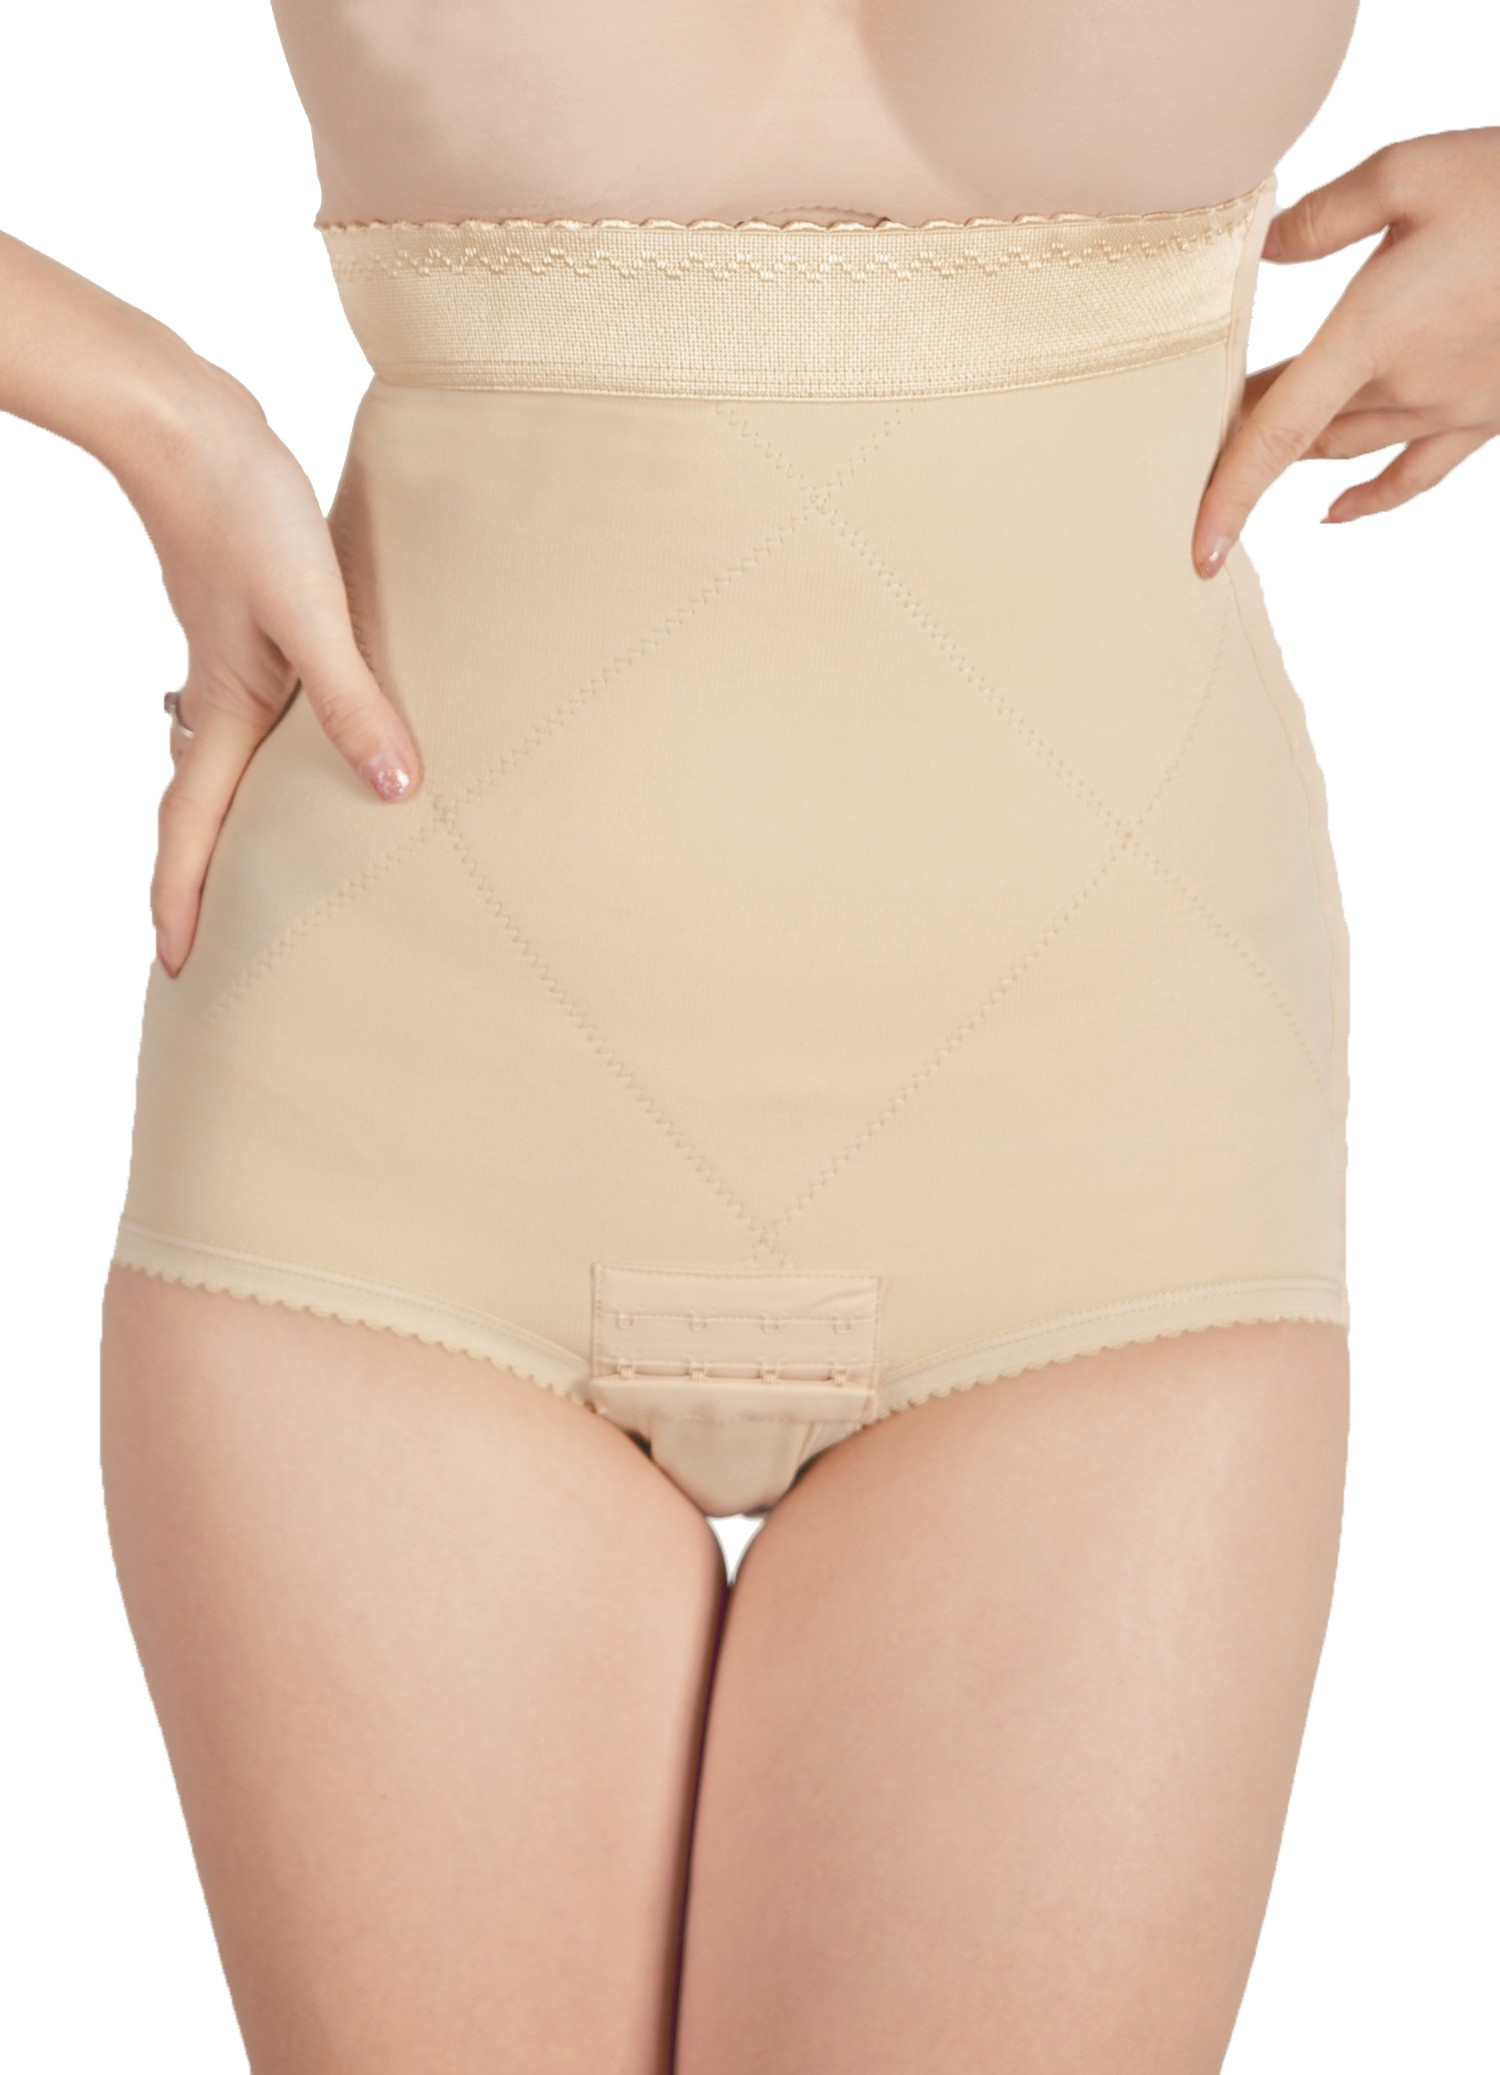 Envy Her Postpartum Tummy Tuck Recovery Binder (Nu